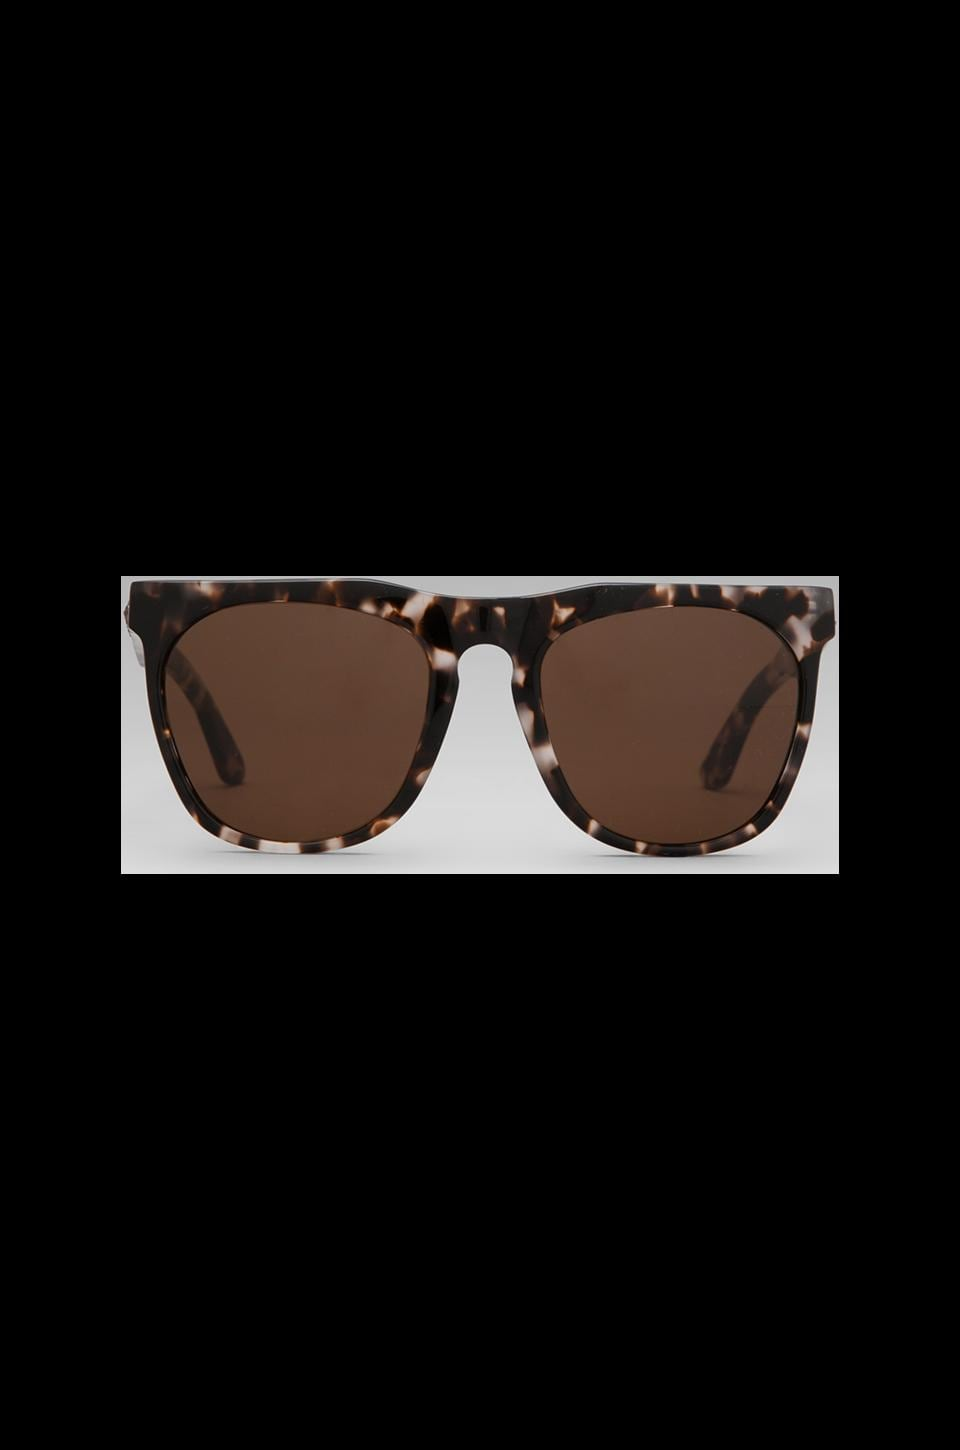 House of Harlow 1960 House of Harlow Blondie Sunglasses in Clear Tortoise